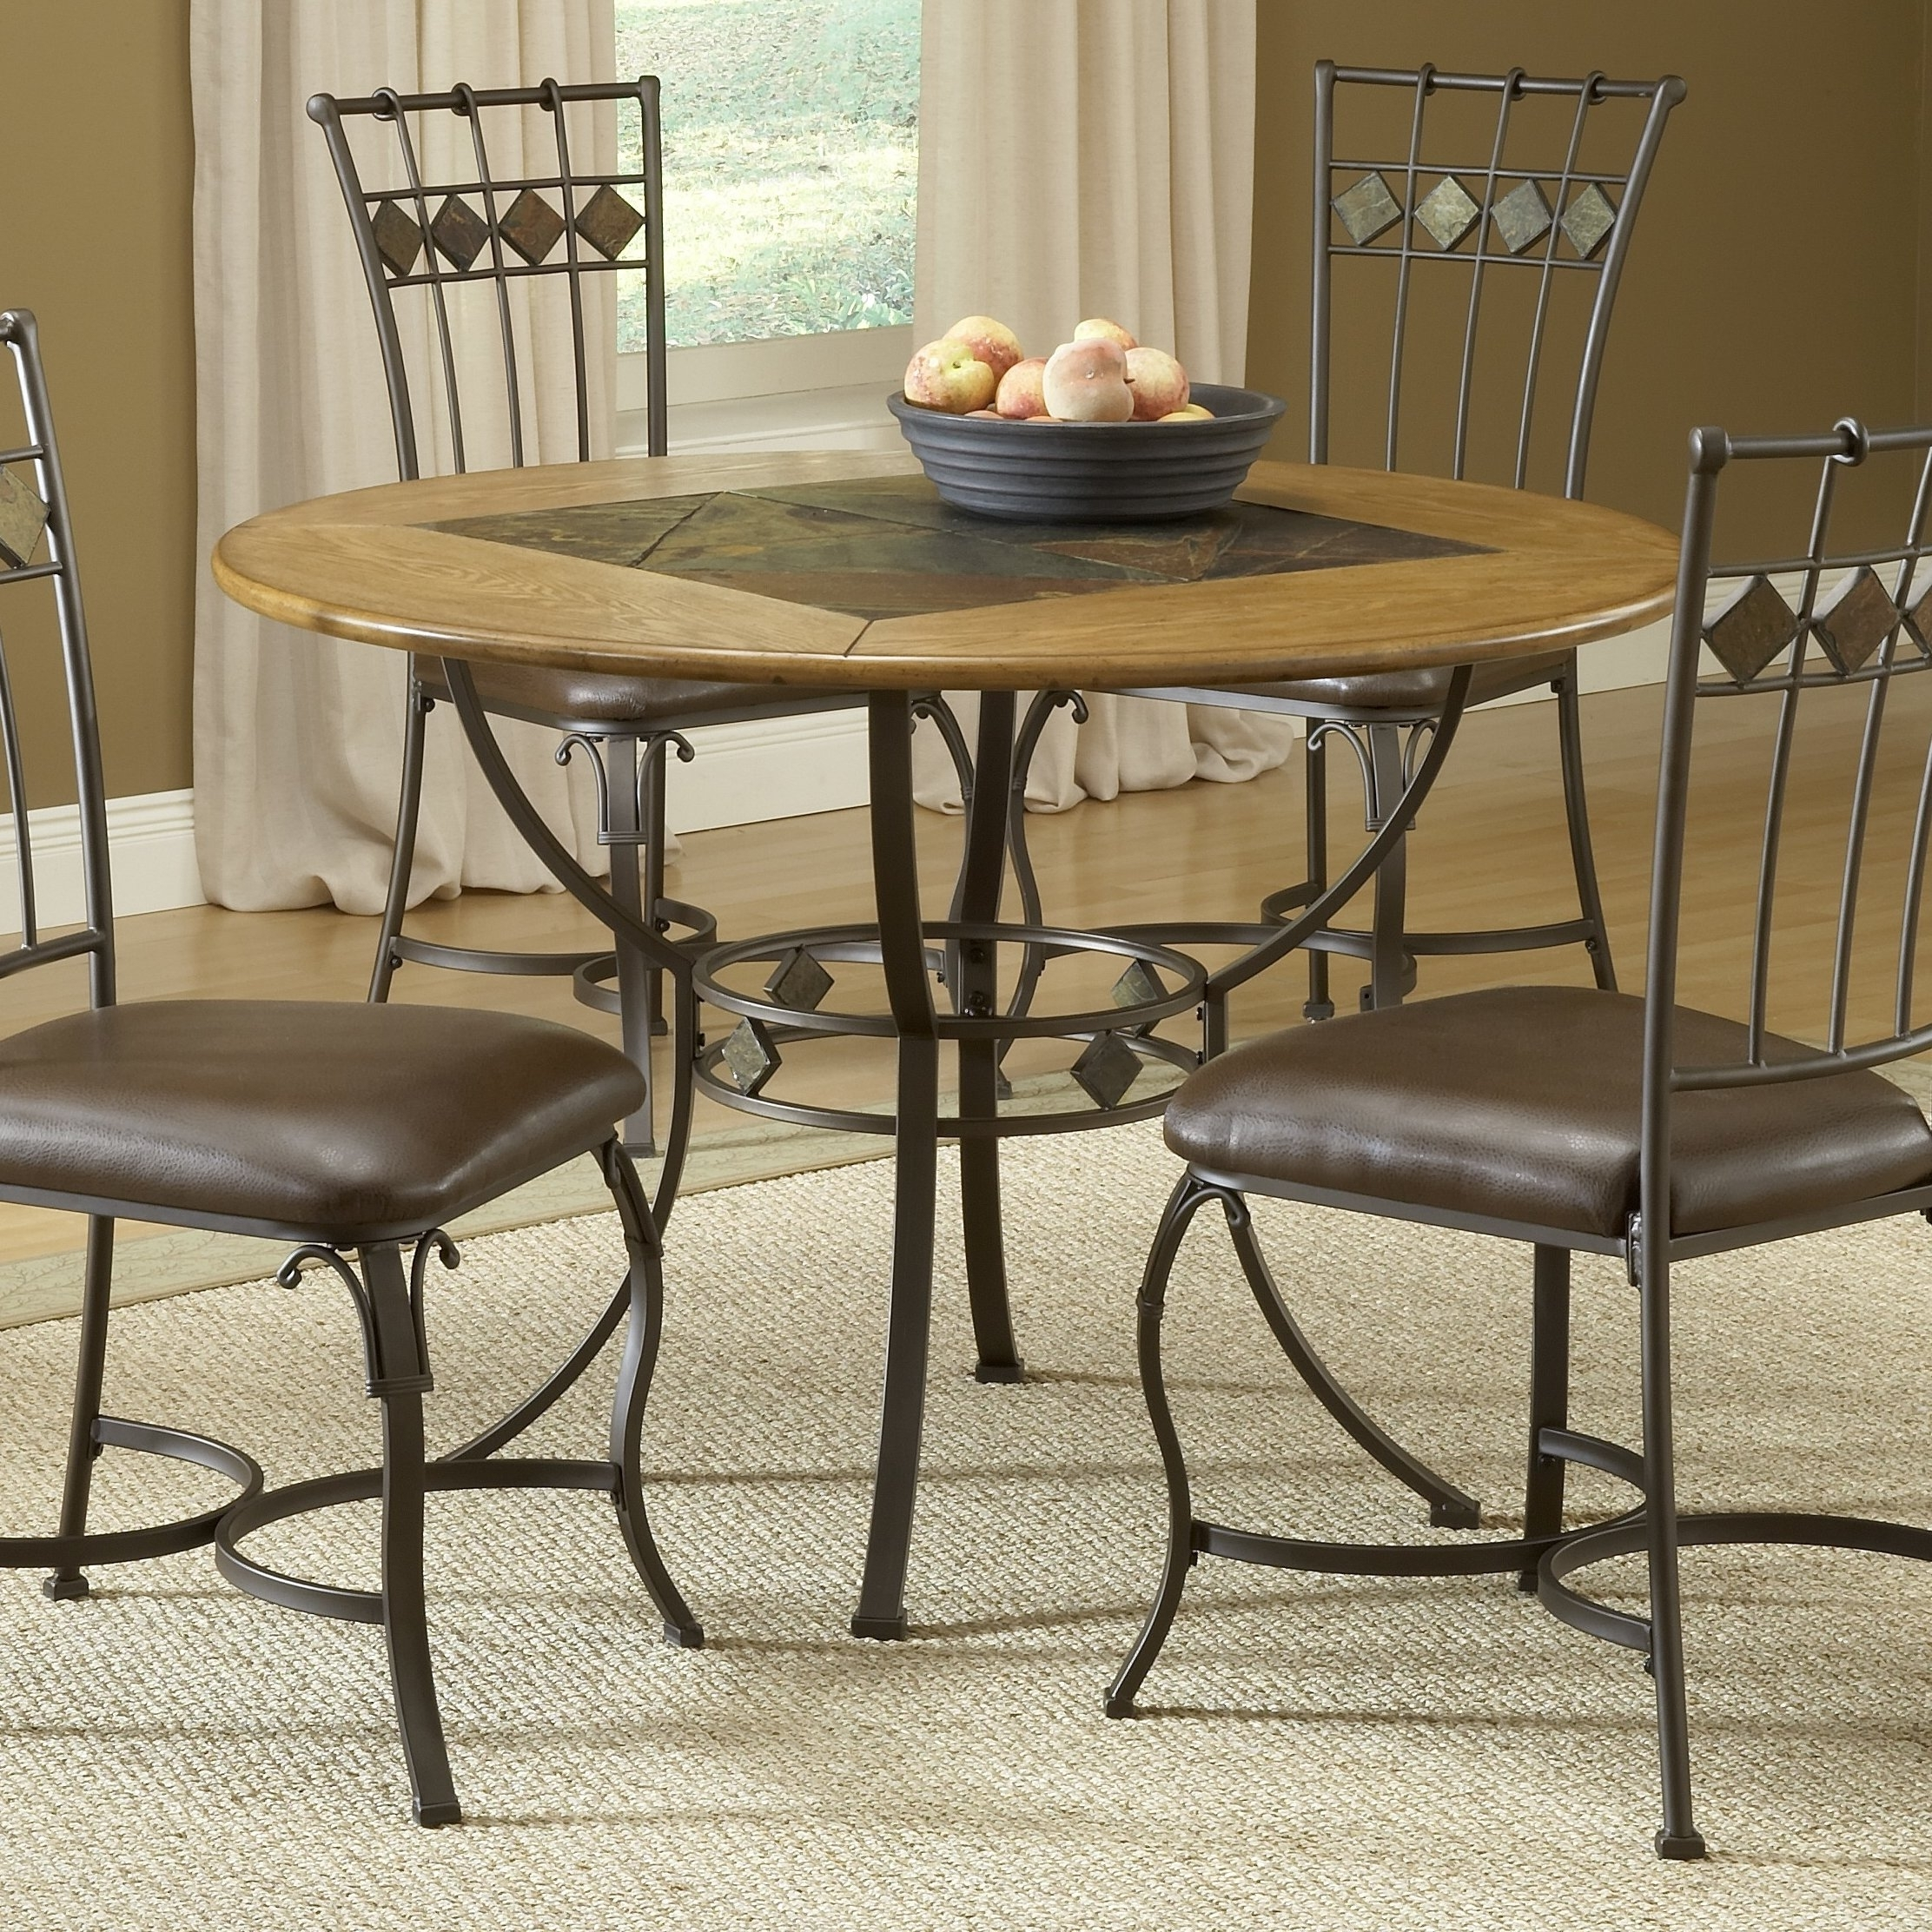 Wayfair Throughout Most Recently Released Caira 9 Piece Extension Dining Sets With Diamond Back Chairs (View 10 of 25)